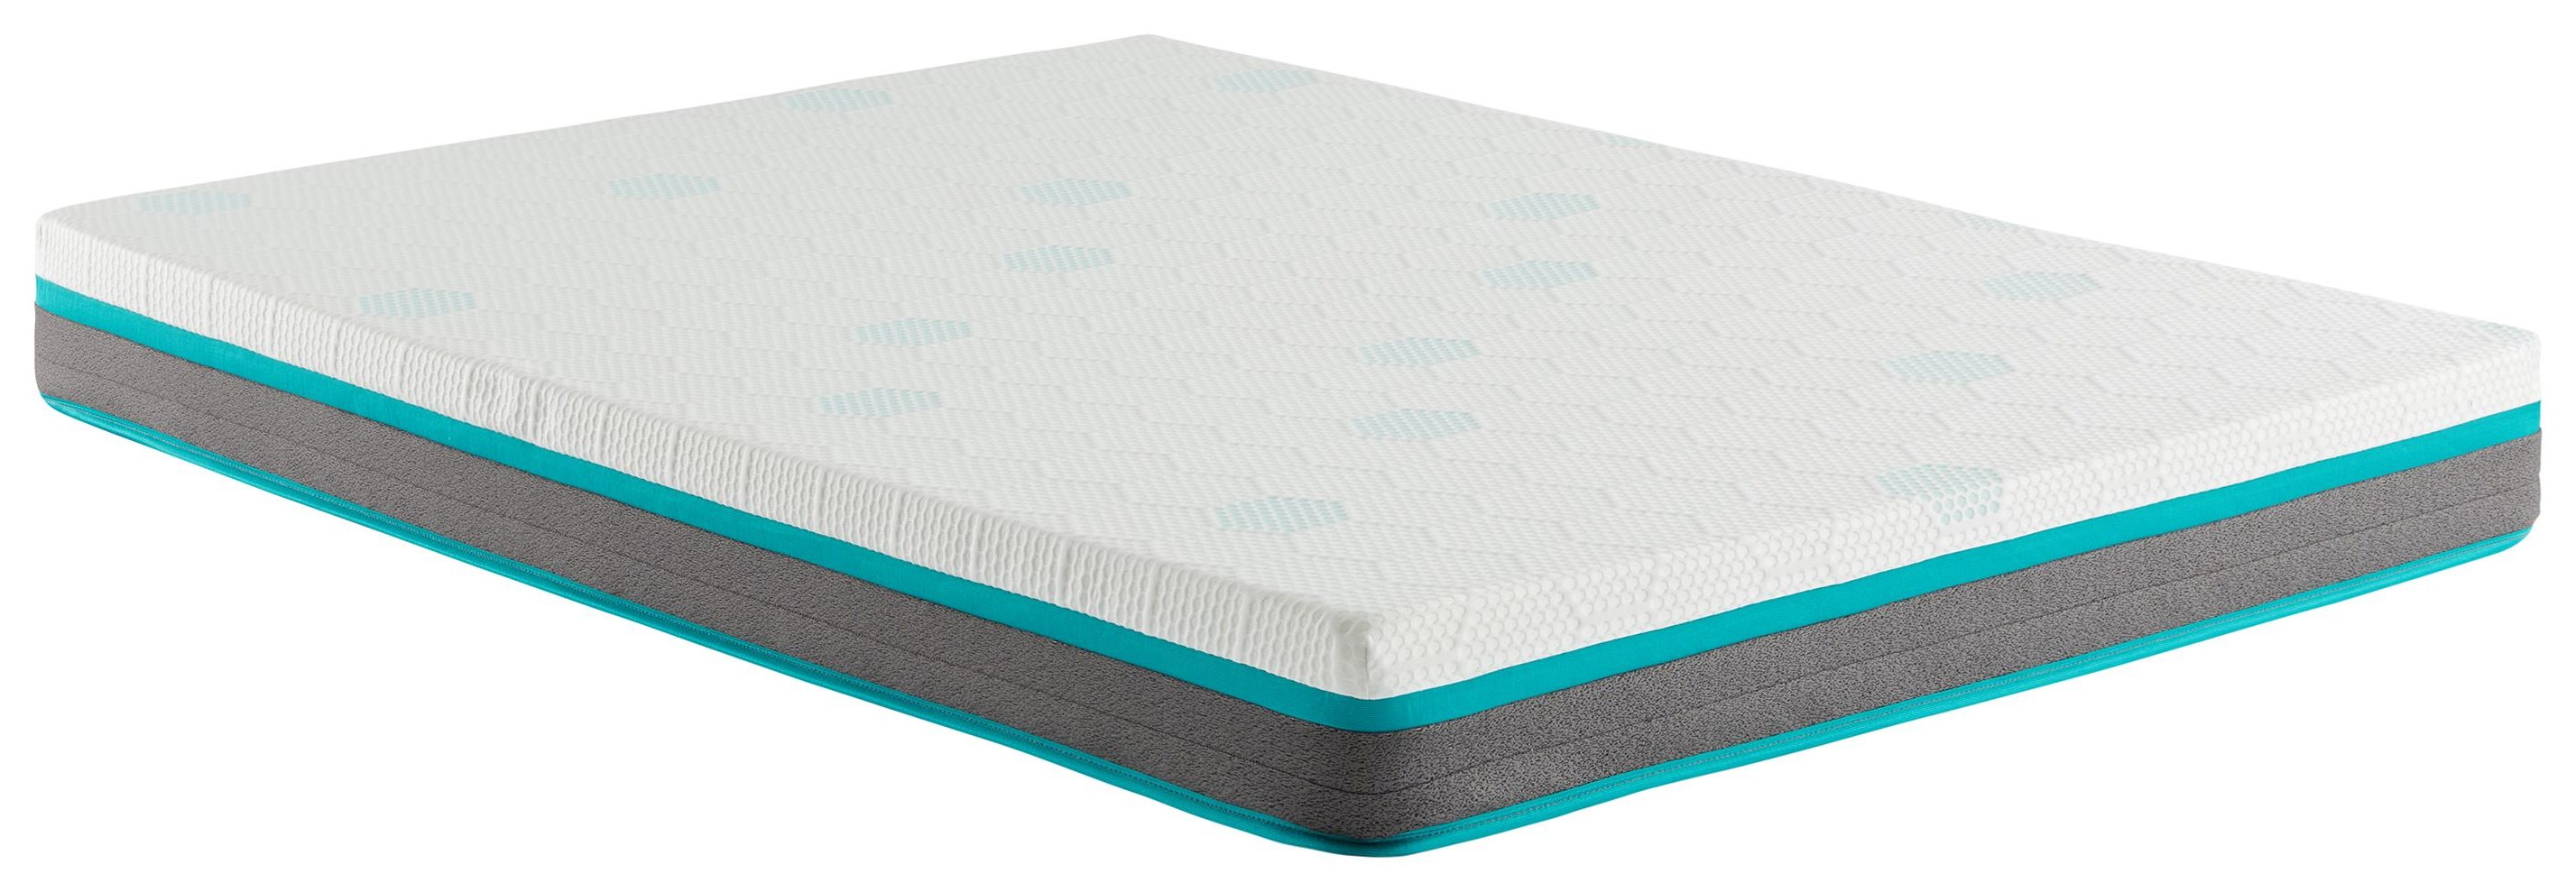 "Sutter's Fort 7"" King Memory Foam Mattress by Corsicana at Beck's Furniture"